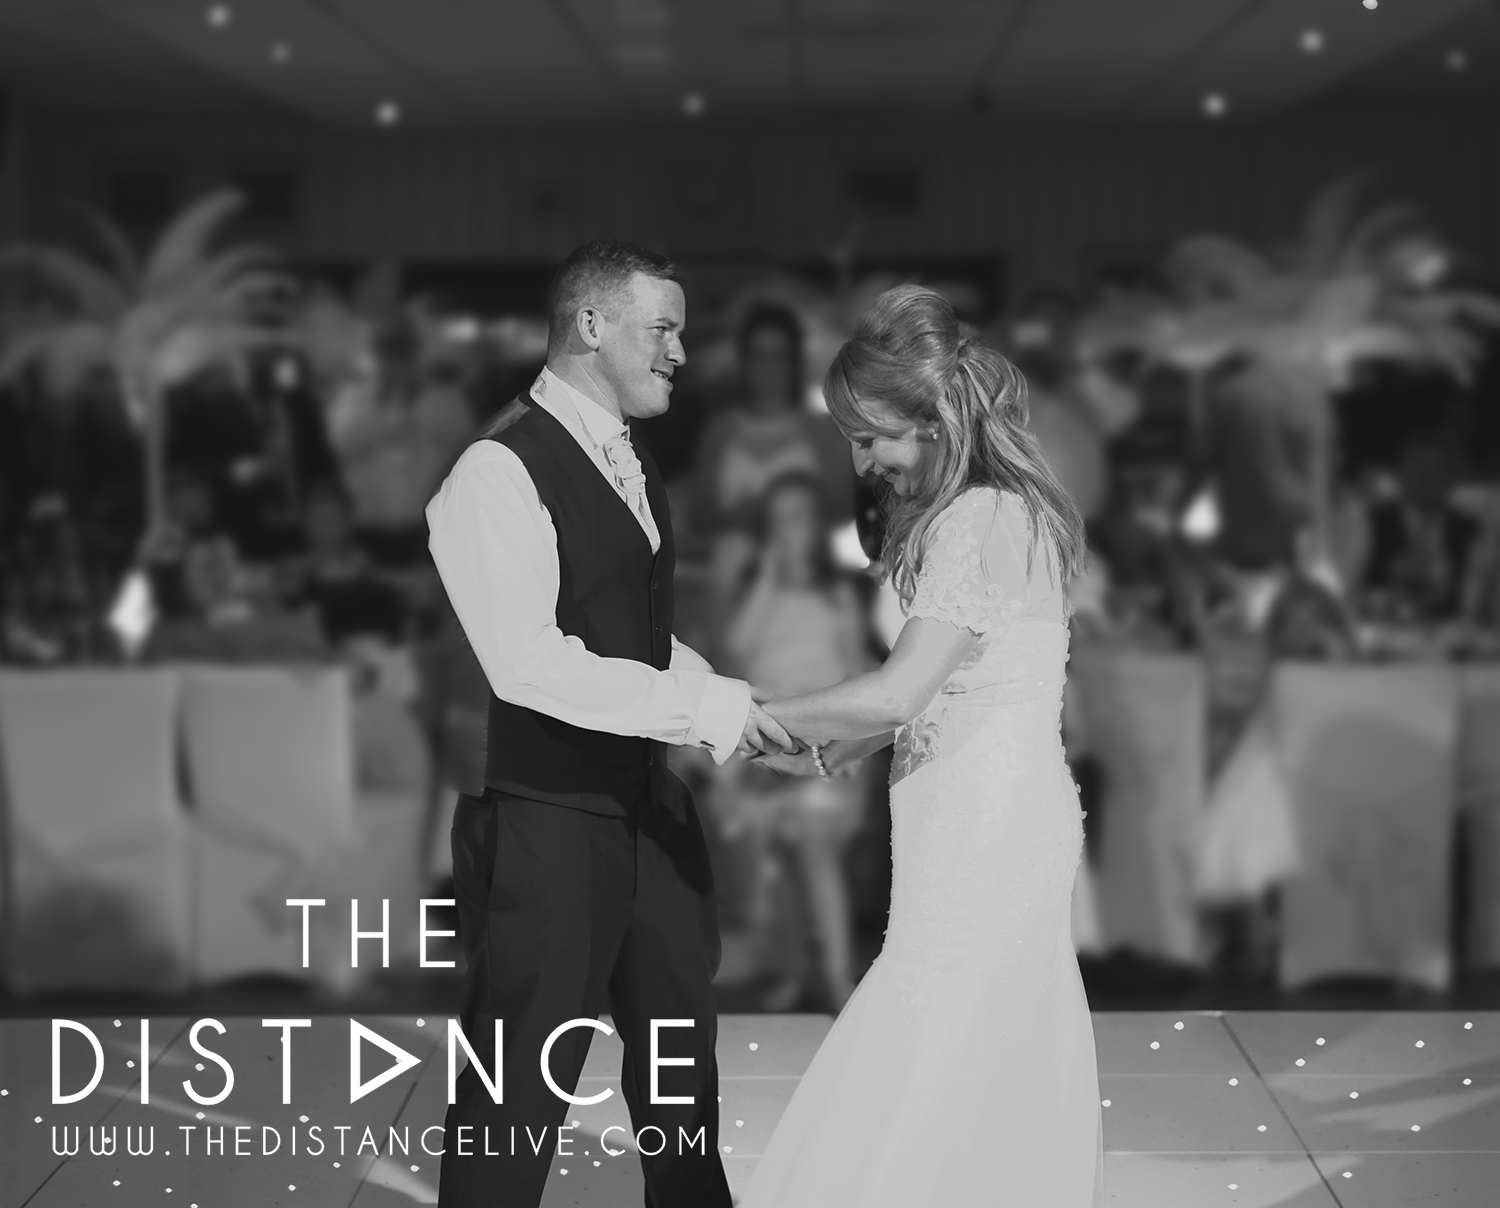 acoustic wedding band Cumbria | The Distance